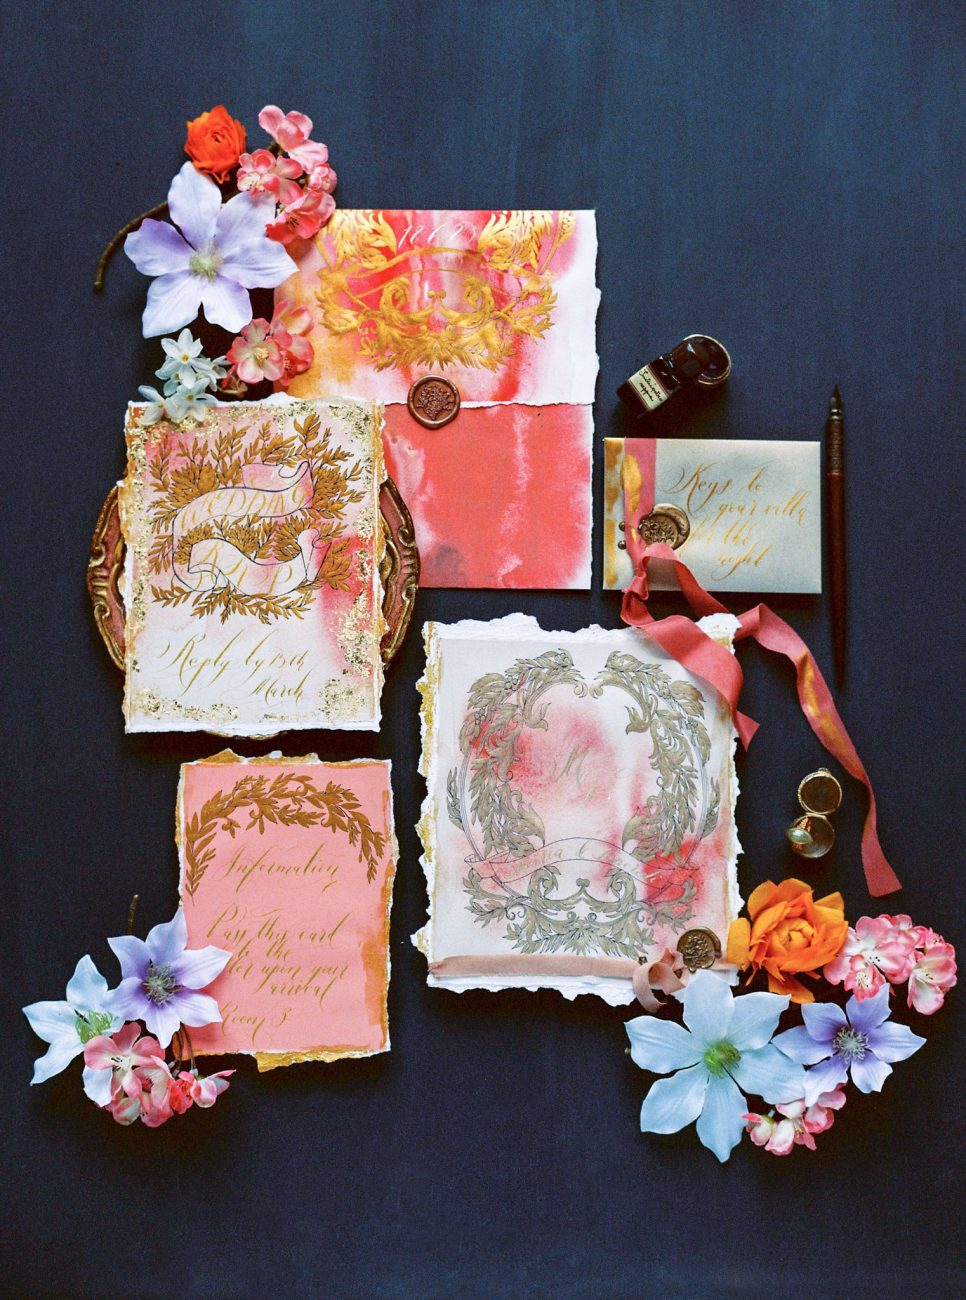 Tropical wedding invitations with accents of deep coral and gold